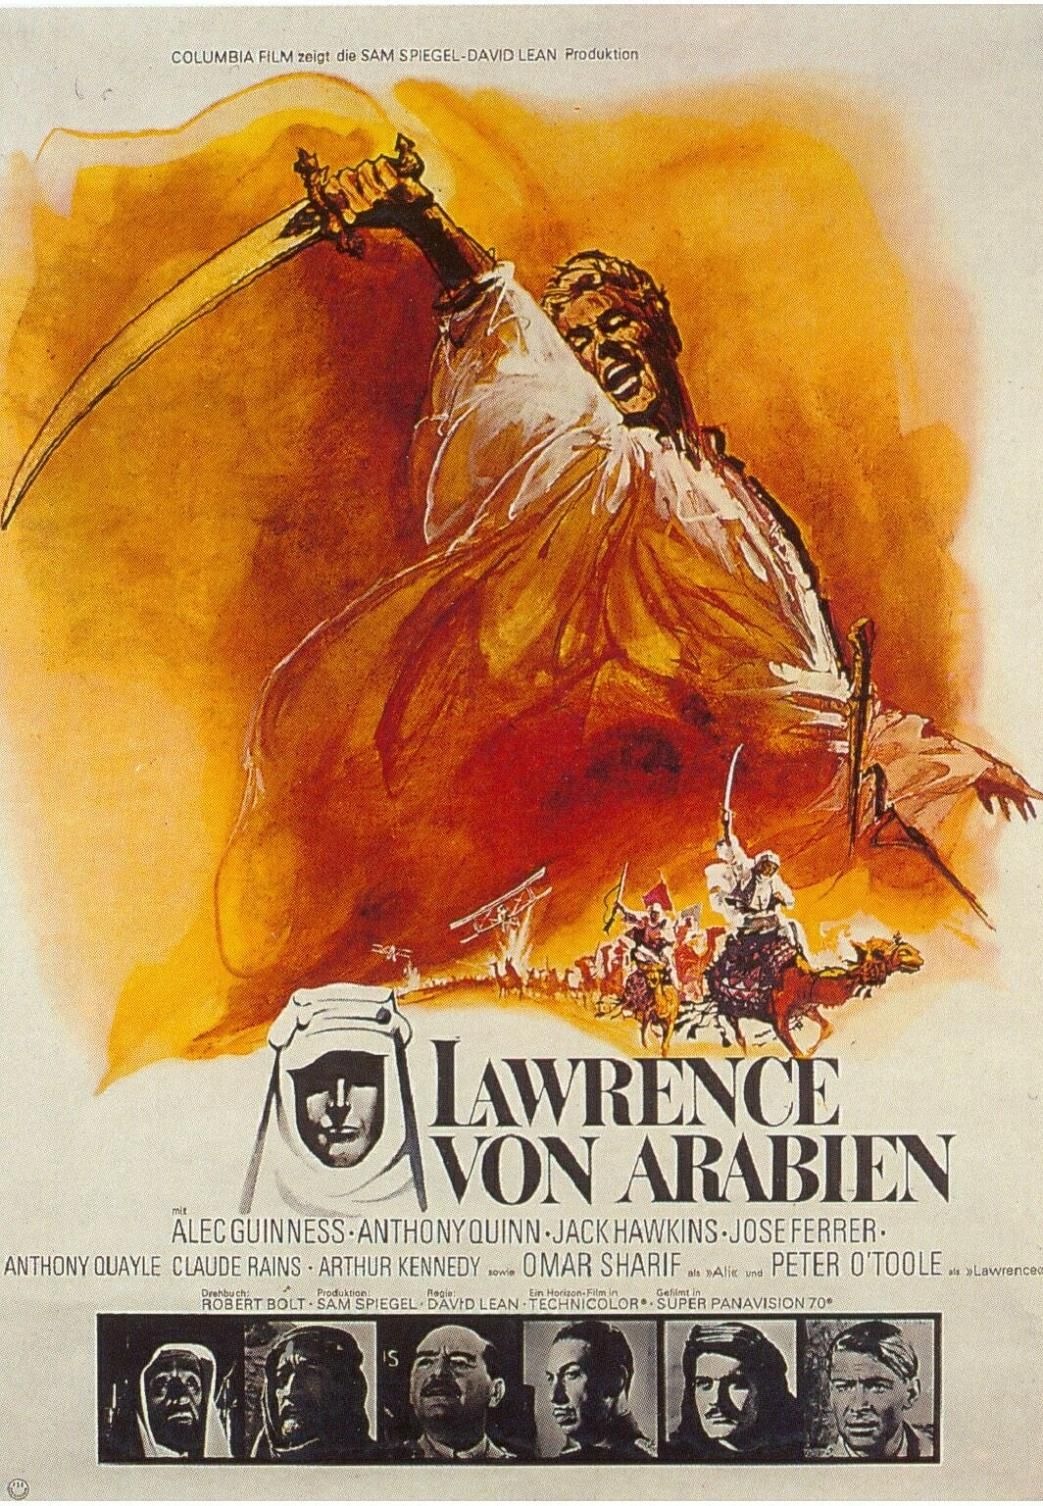 Lawrence Of Arabia French One Sheet Mine Is A Giglee Reprint Peliculas Completas Subtitulos Cine